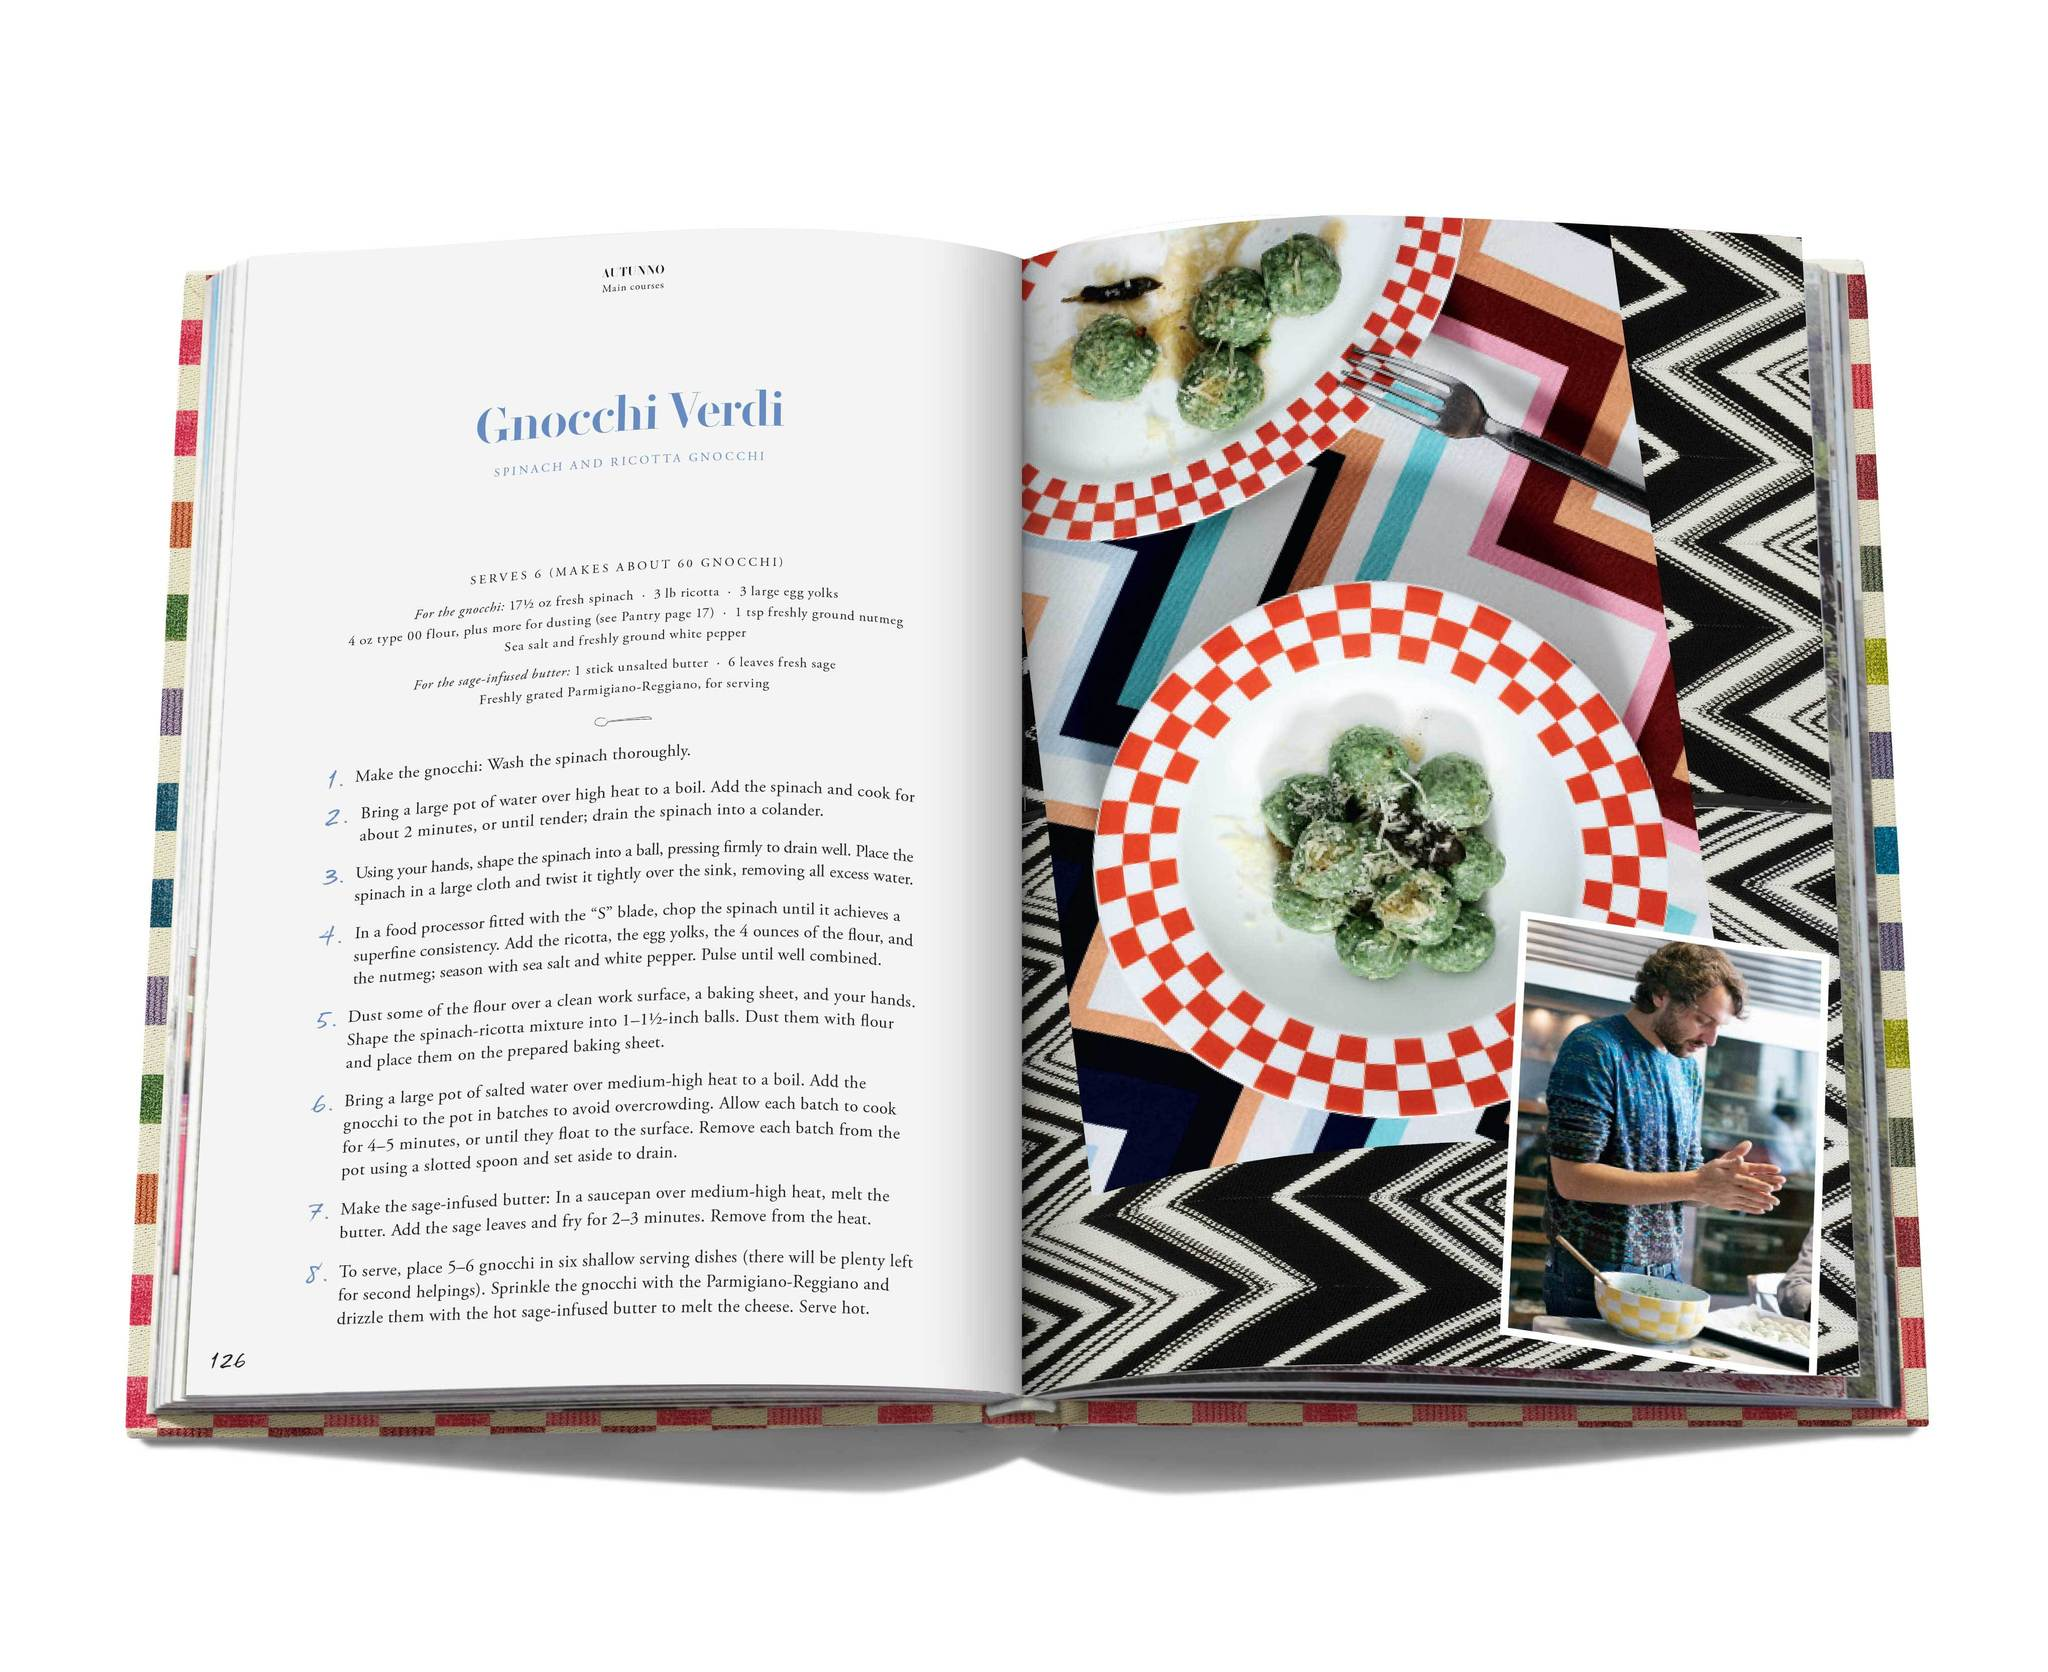 Missoni Family Cookbook